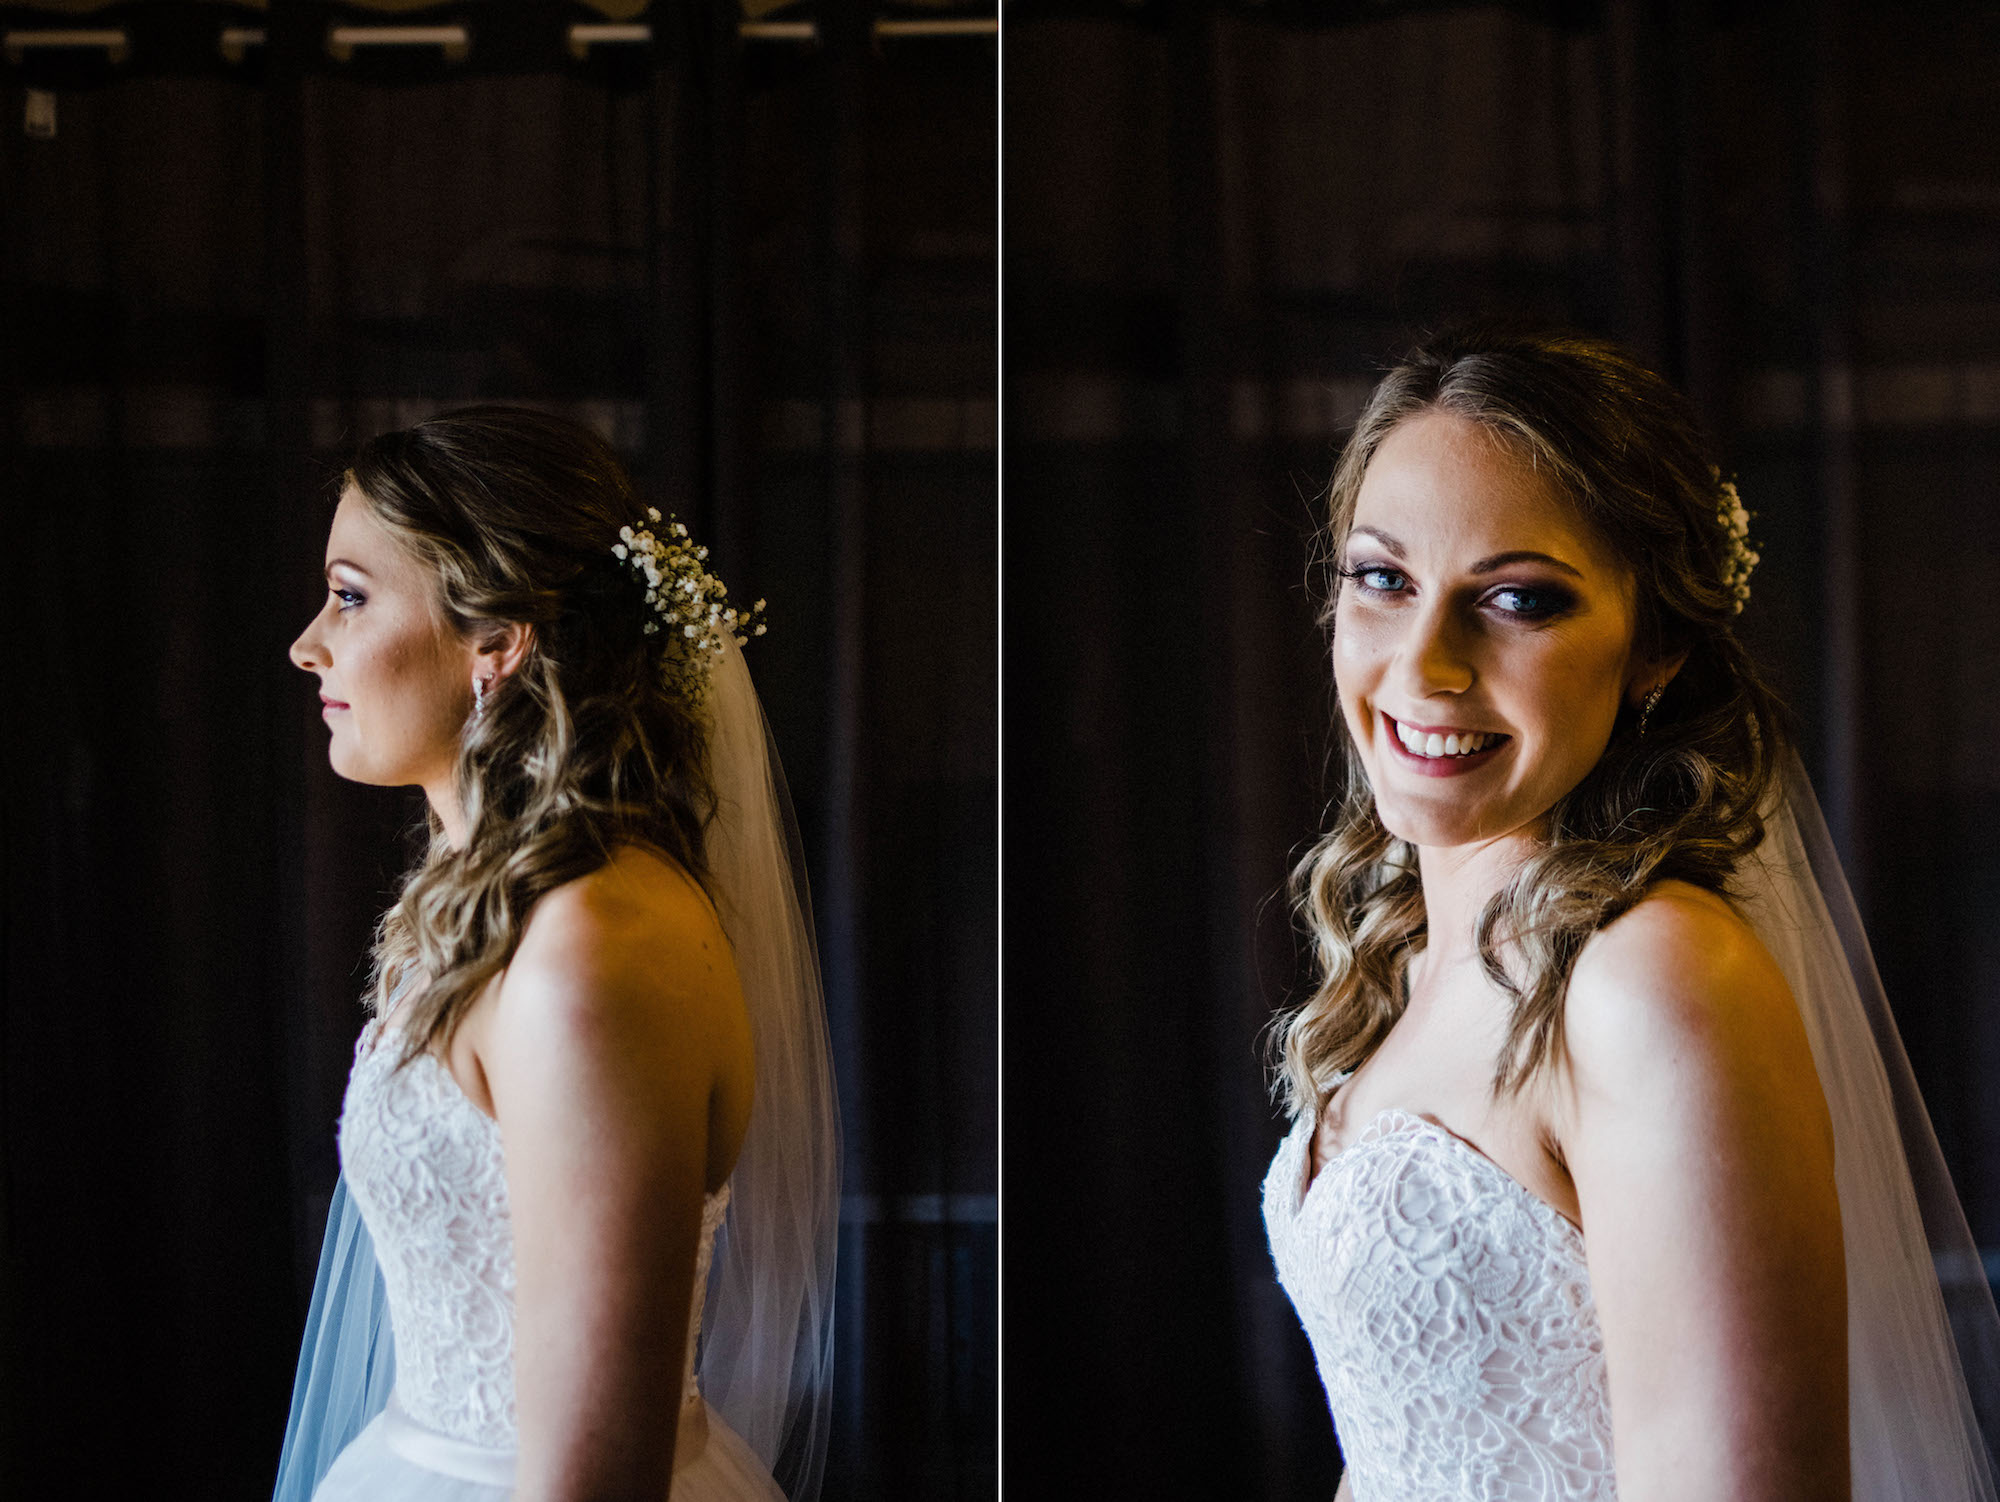 A portrait of the bride before she leaves her house to get married.